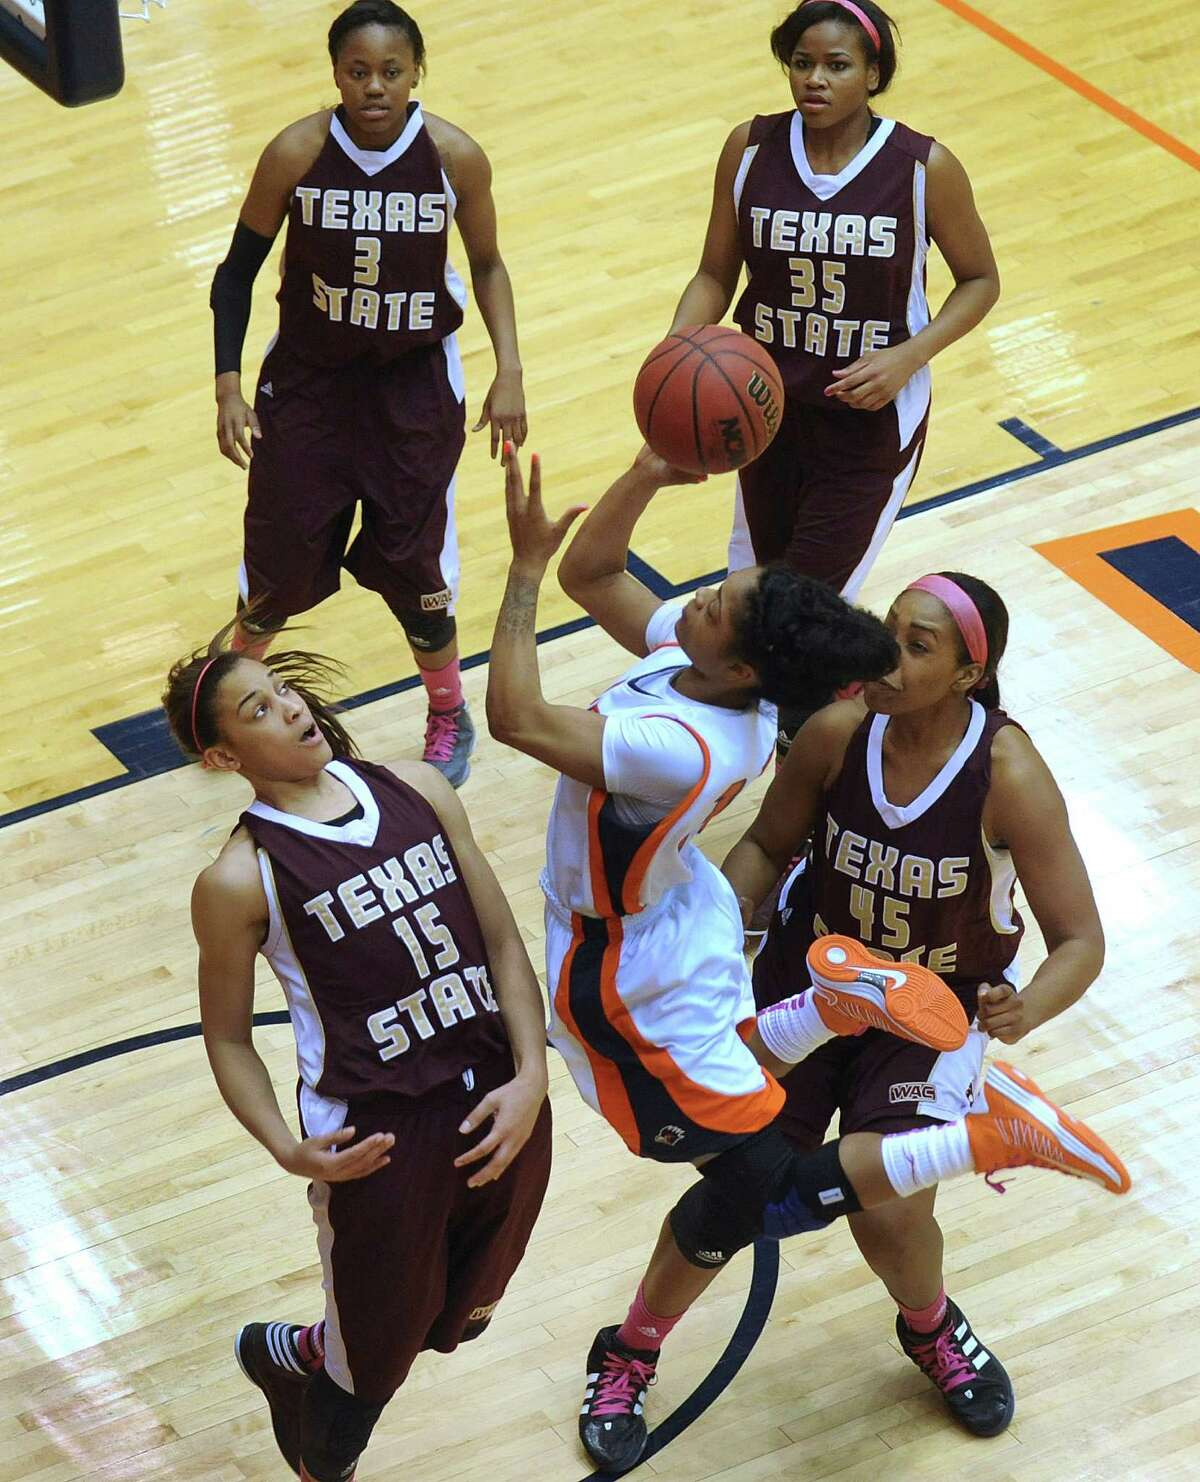 Senior guard Simone Young of UTSA shoots a layup as Jasmine Baugus (15), Diamond Ford (3), Erin Peoples (35) and Ashley Ezeh of Texas State defend during women's college basketball action at UTSA on Saturday, Feb. 16, 2013.